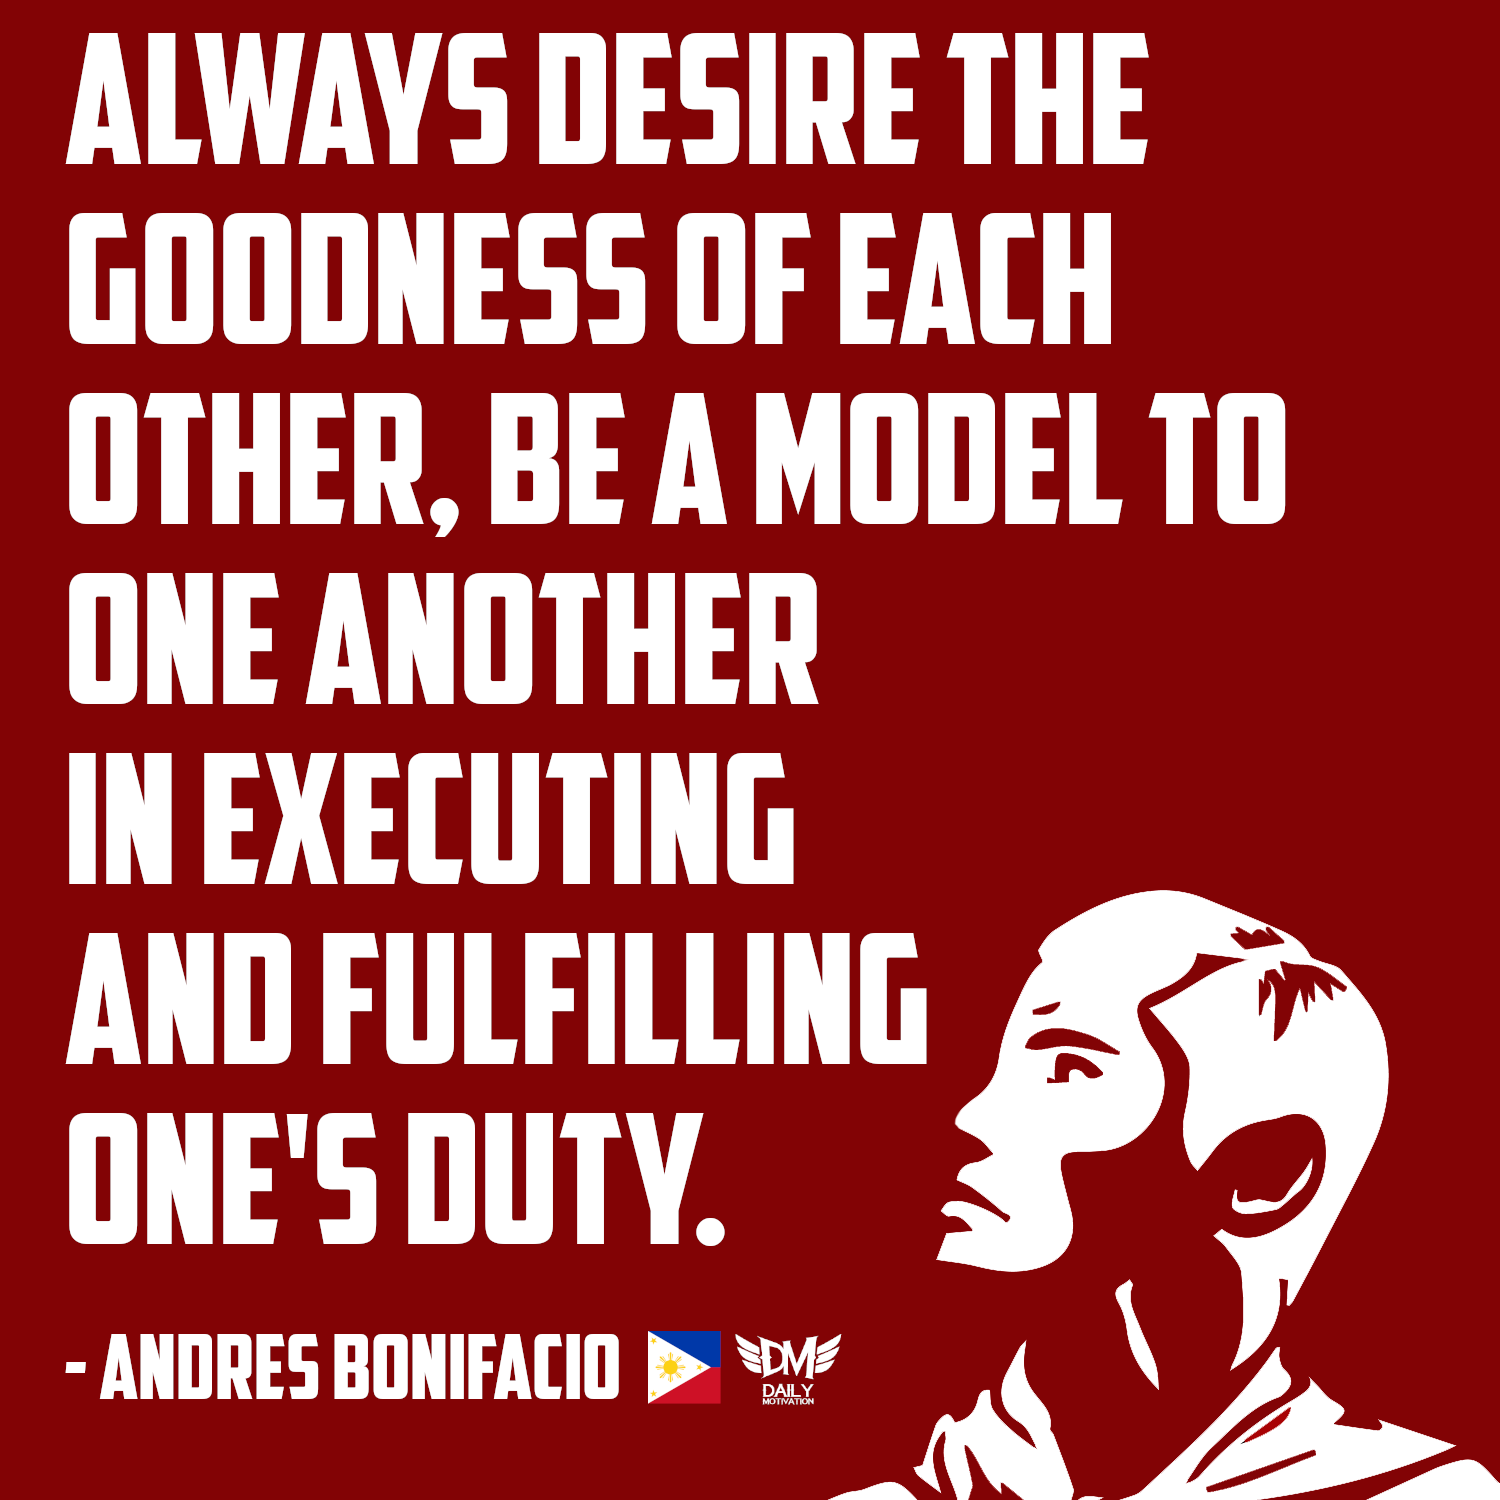 """Always desire the goodness of each other, be a model to one another in executing and fulfilling one's duty,"" – Andrés Bonifacio [1500 x 1500]"